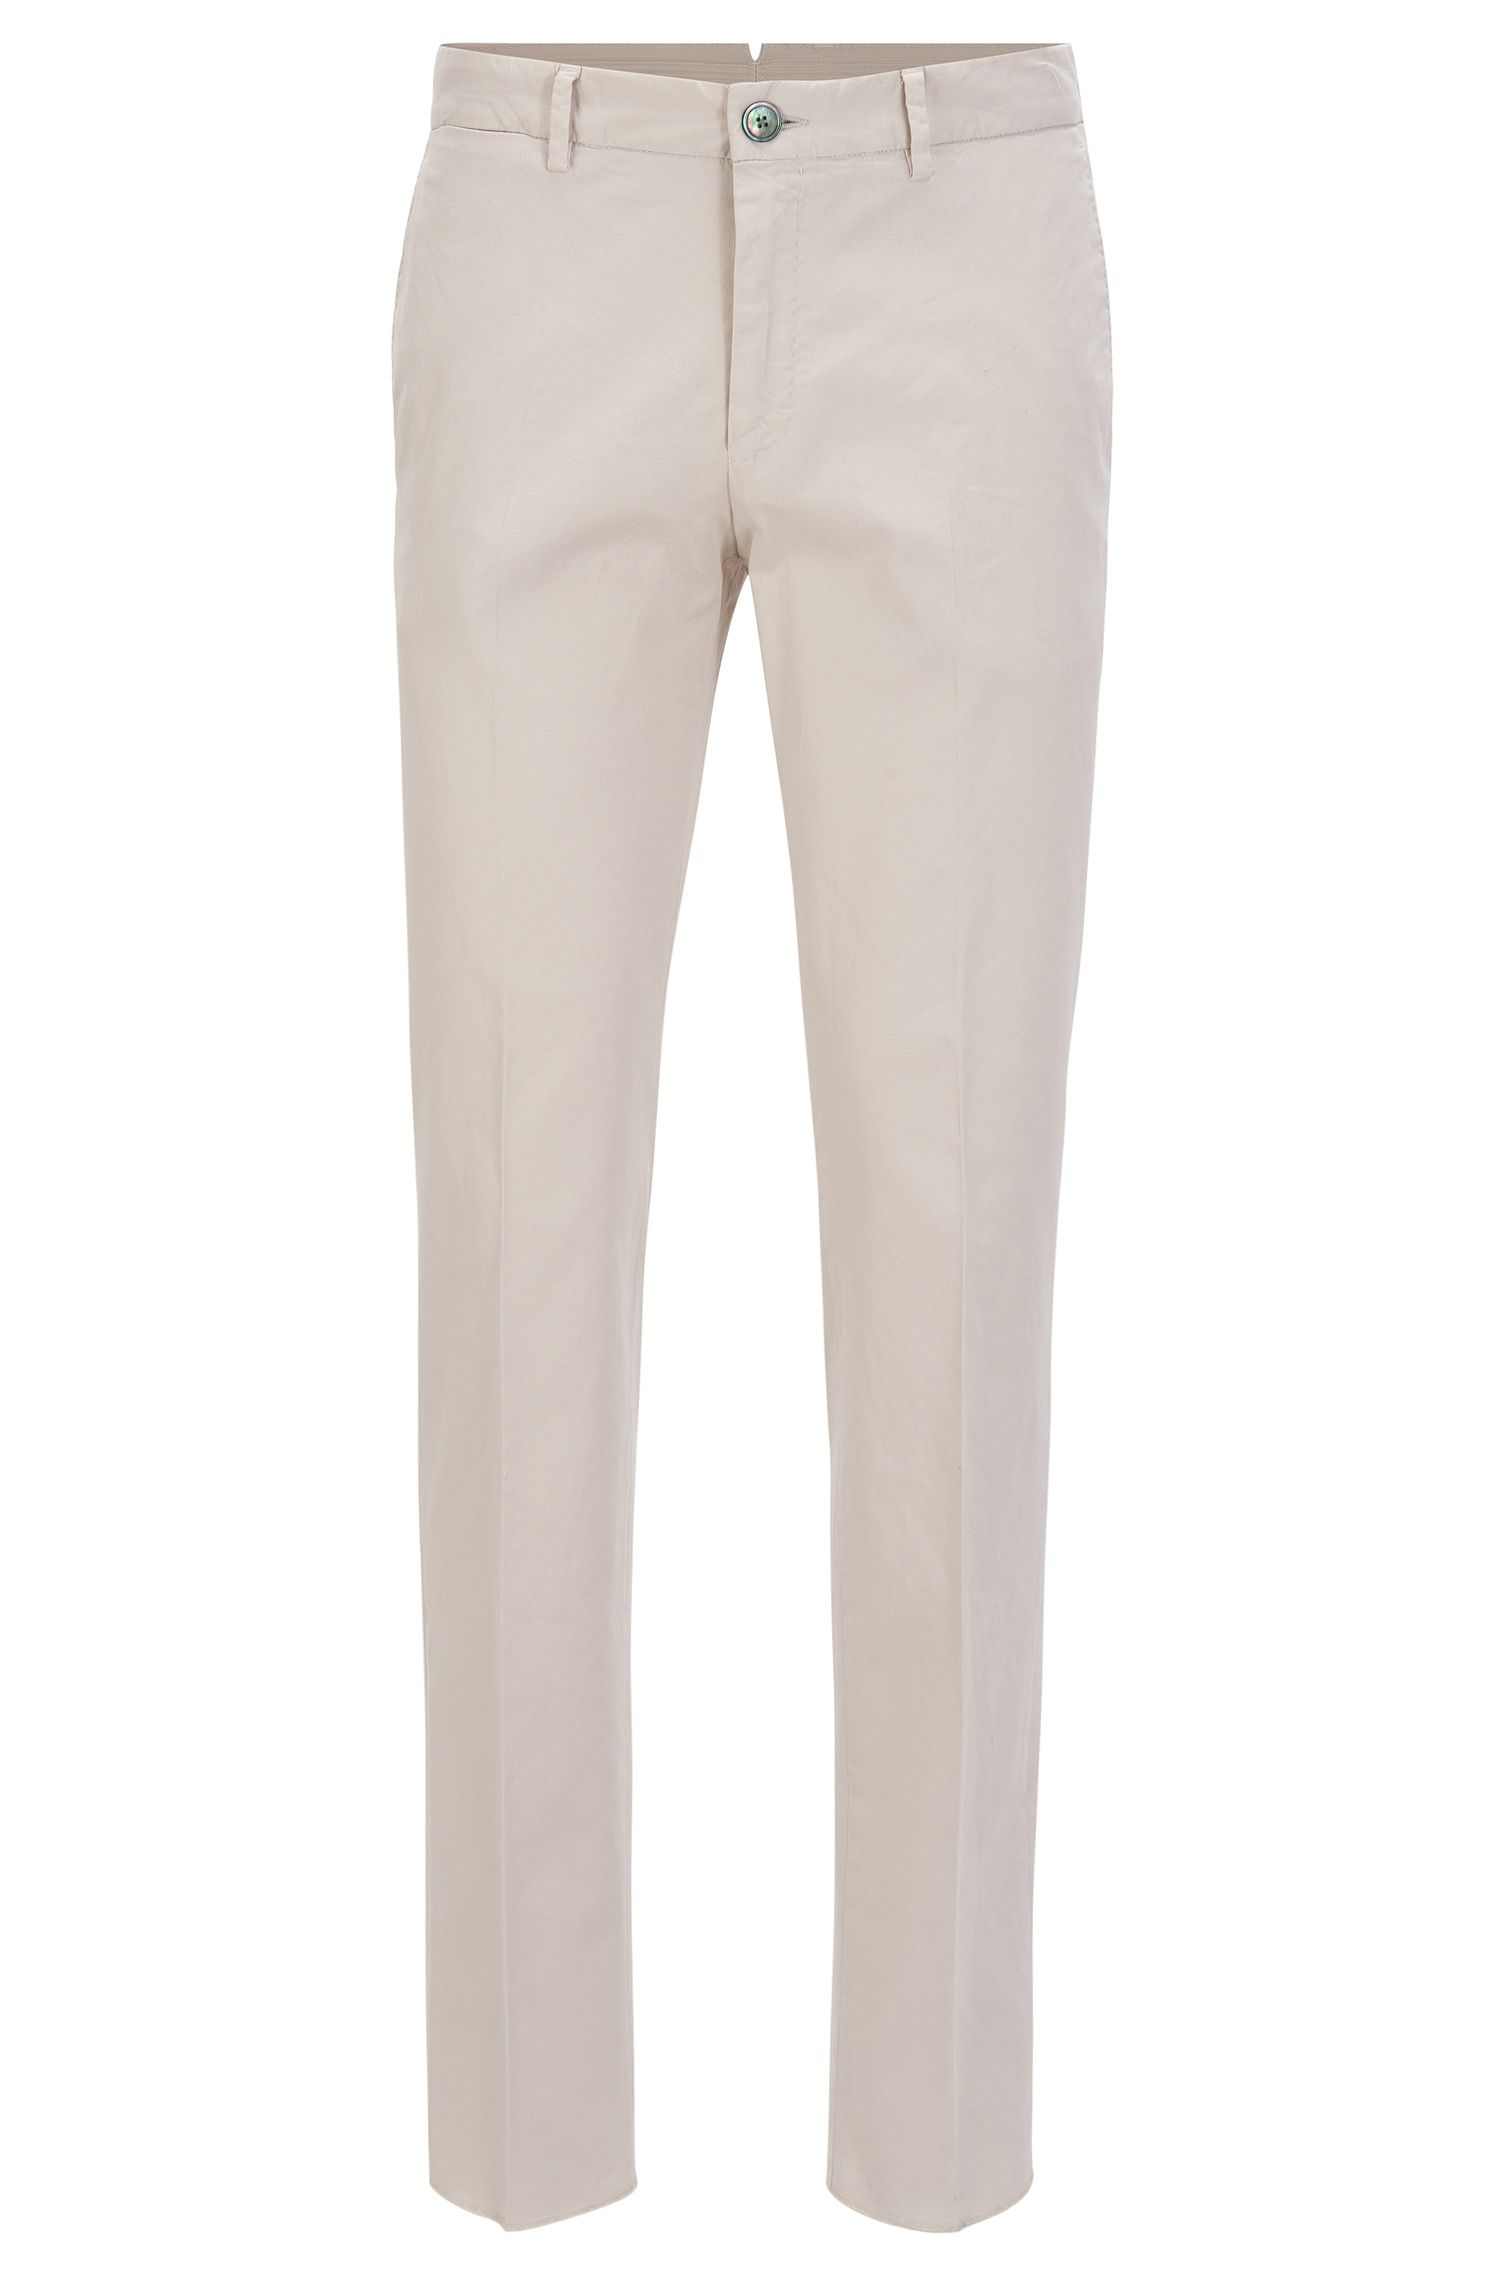 Pantalon Slim Fit en coton stretch teint en pièce